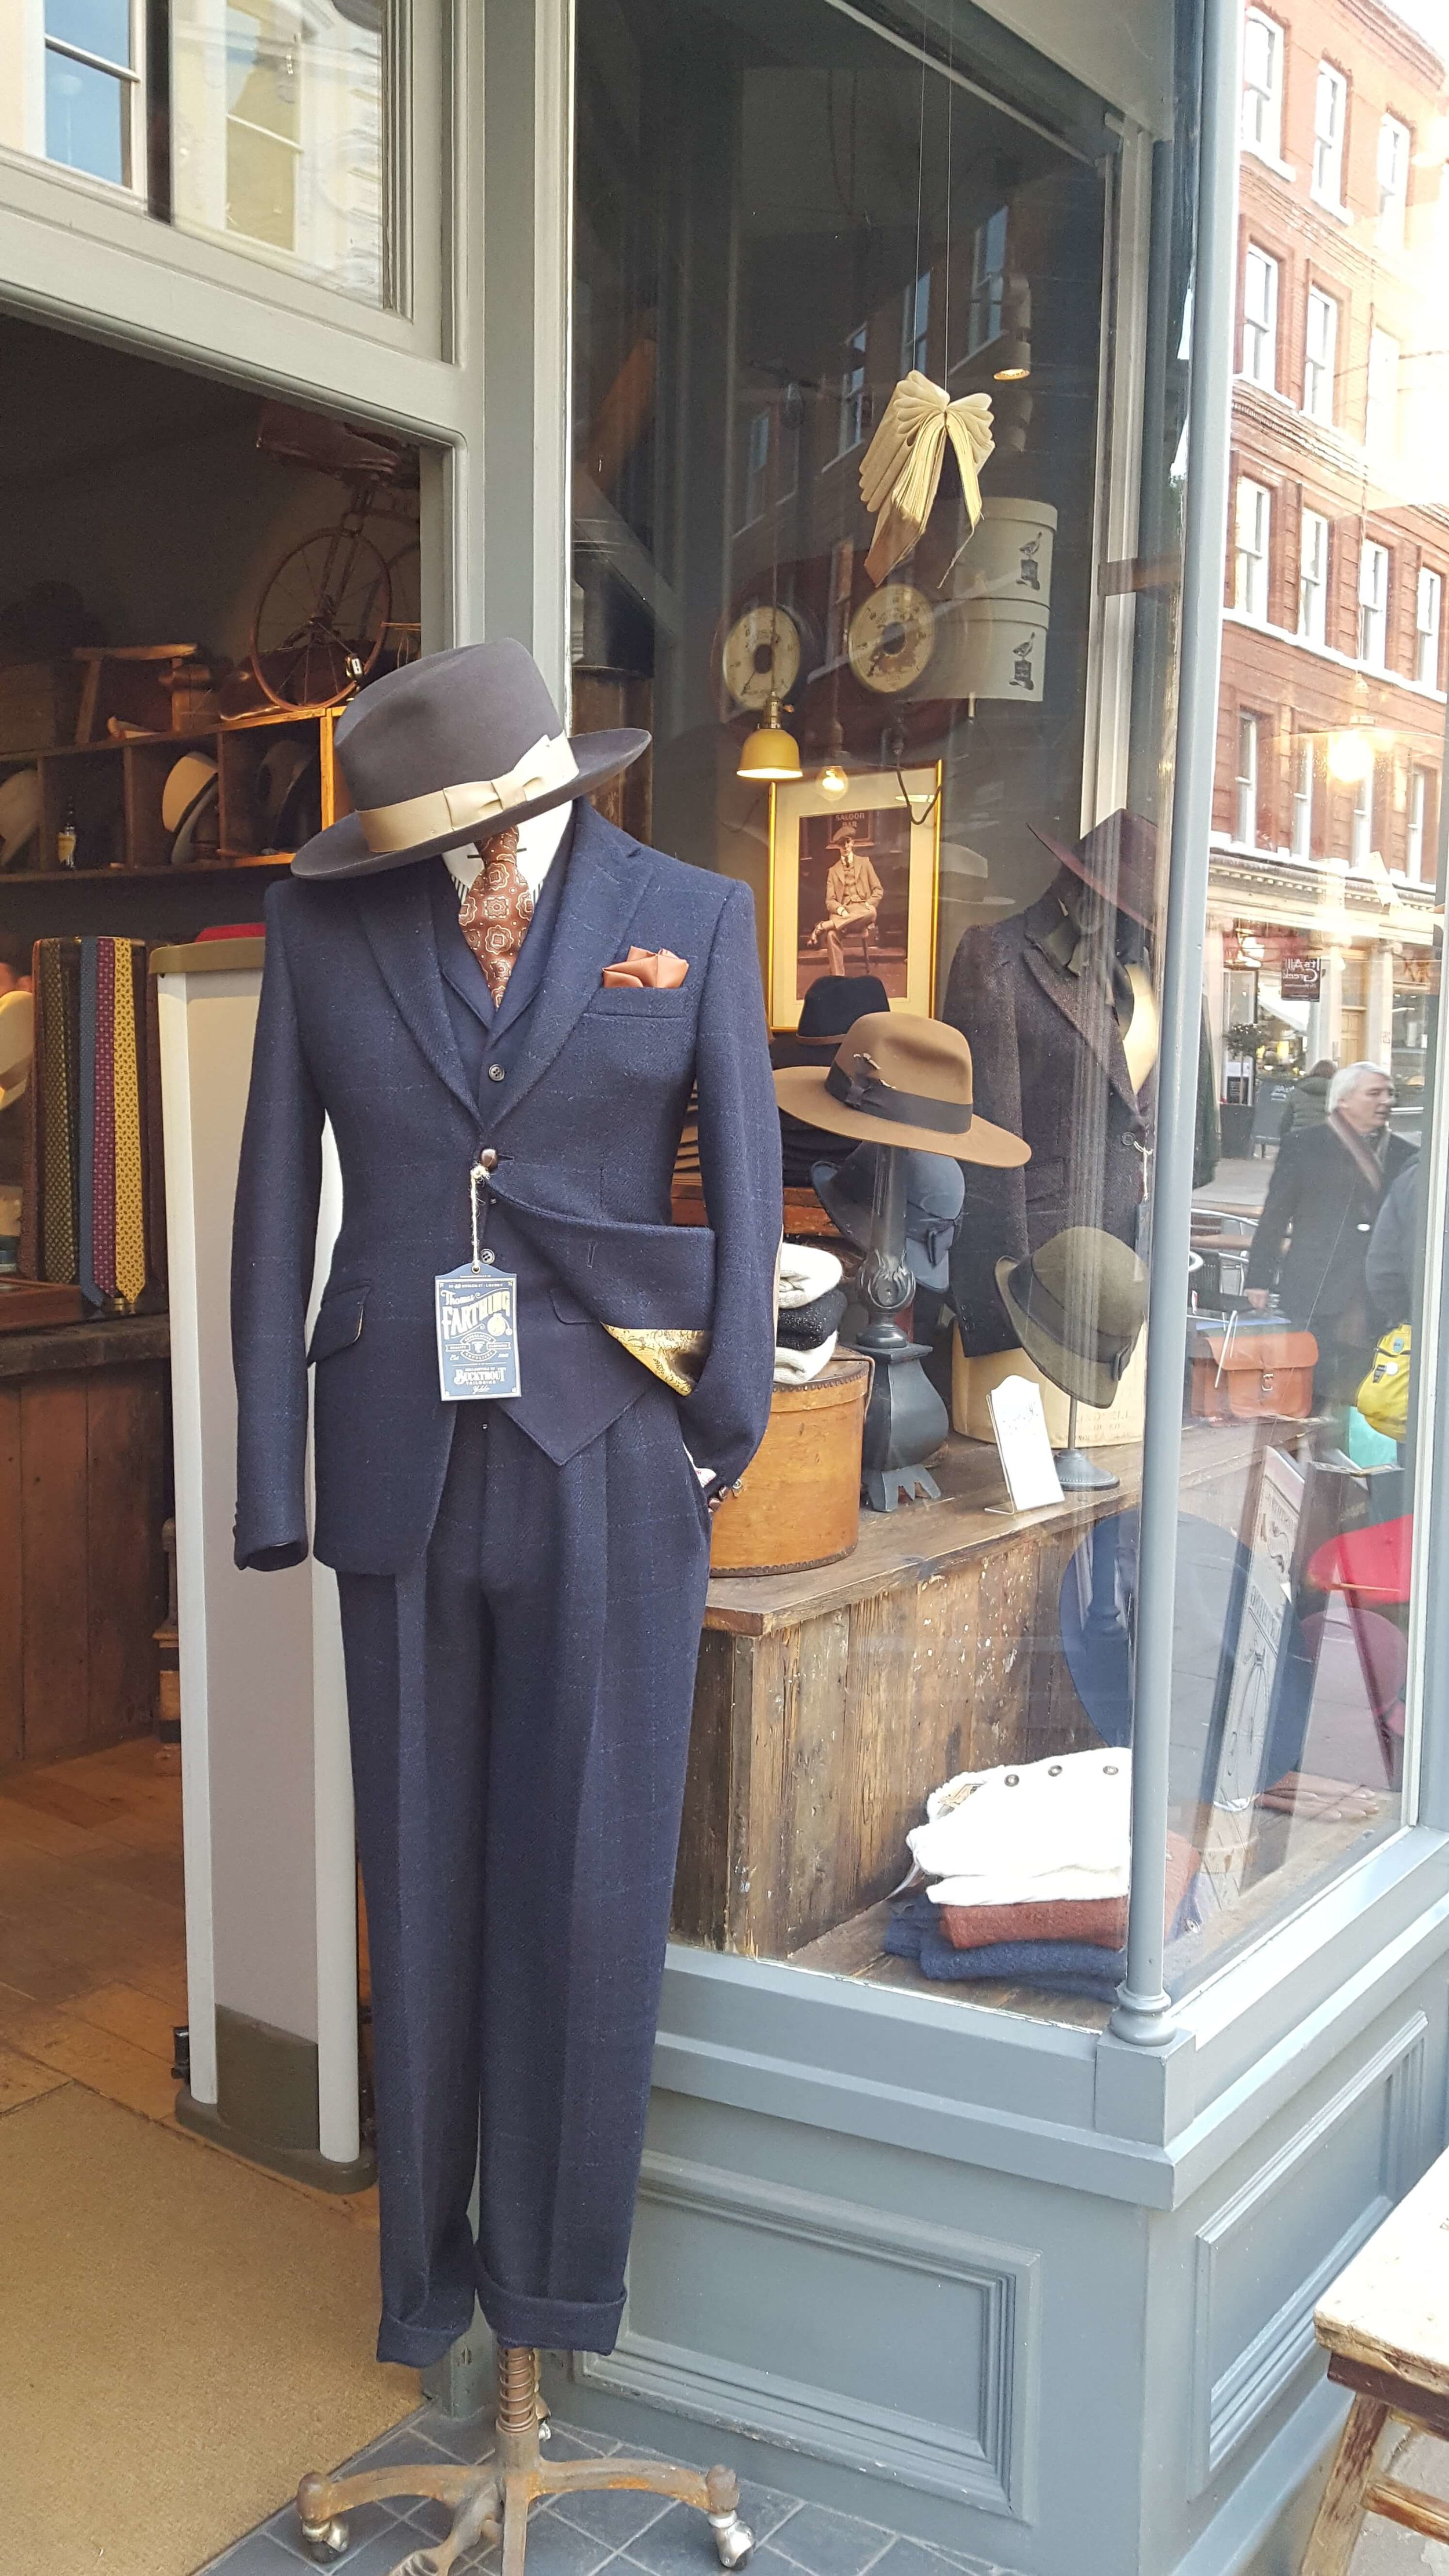 Did you know London has tons of boutiques with handmade goods using local fibers, e.g., fine Scottish wool? Save up your money for some of these specialty goods. FYI - Did you know that British men are among the most smartly dressed in the world? Think James Bond and Sean Connery. Just me wee humble opinion.